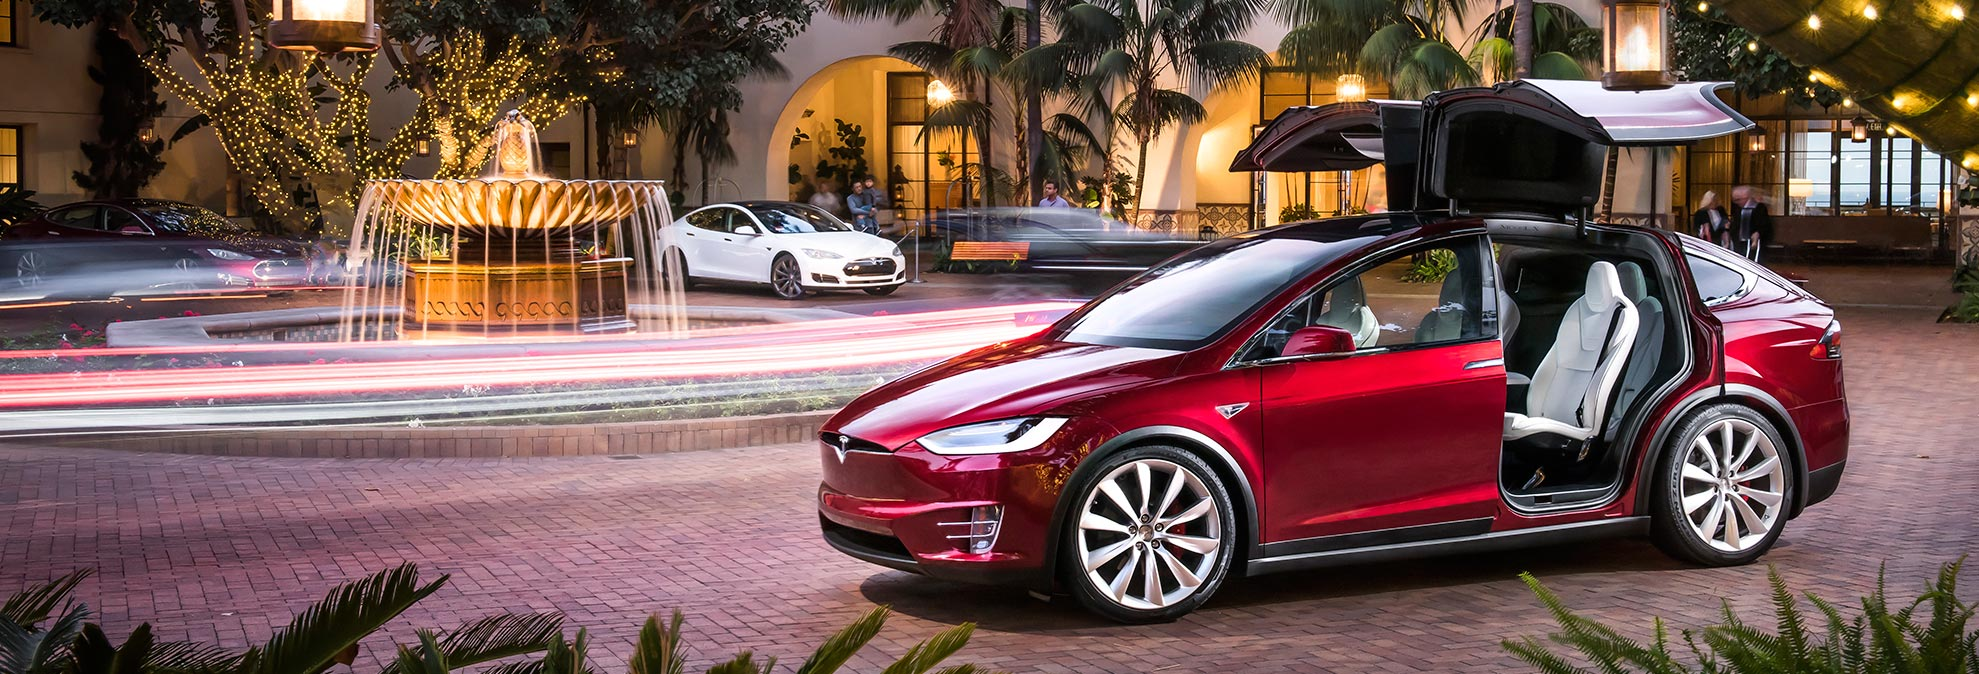 Best Used Minivans >> Early-Build Tesla Model X SUVs Face Quality Issues - Consumer Reports